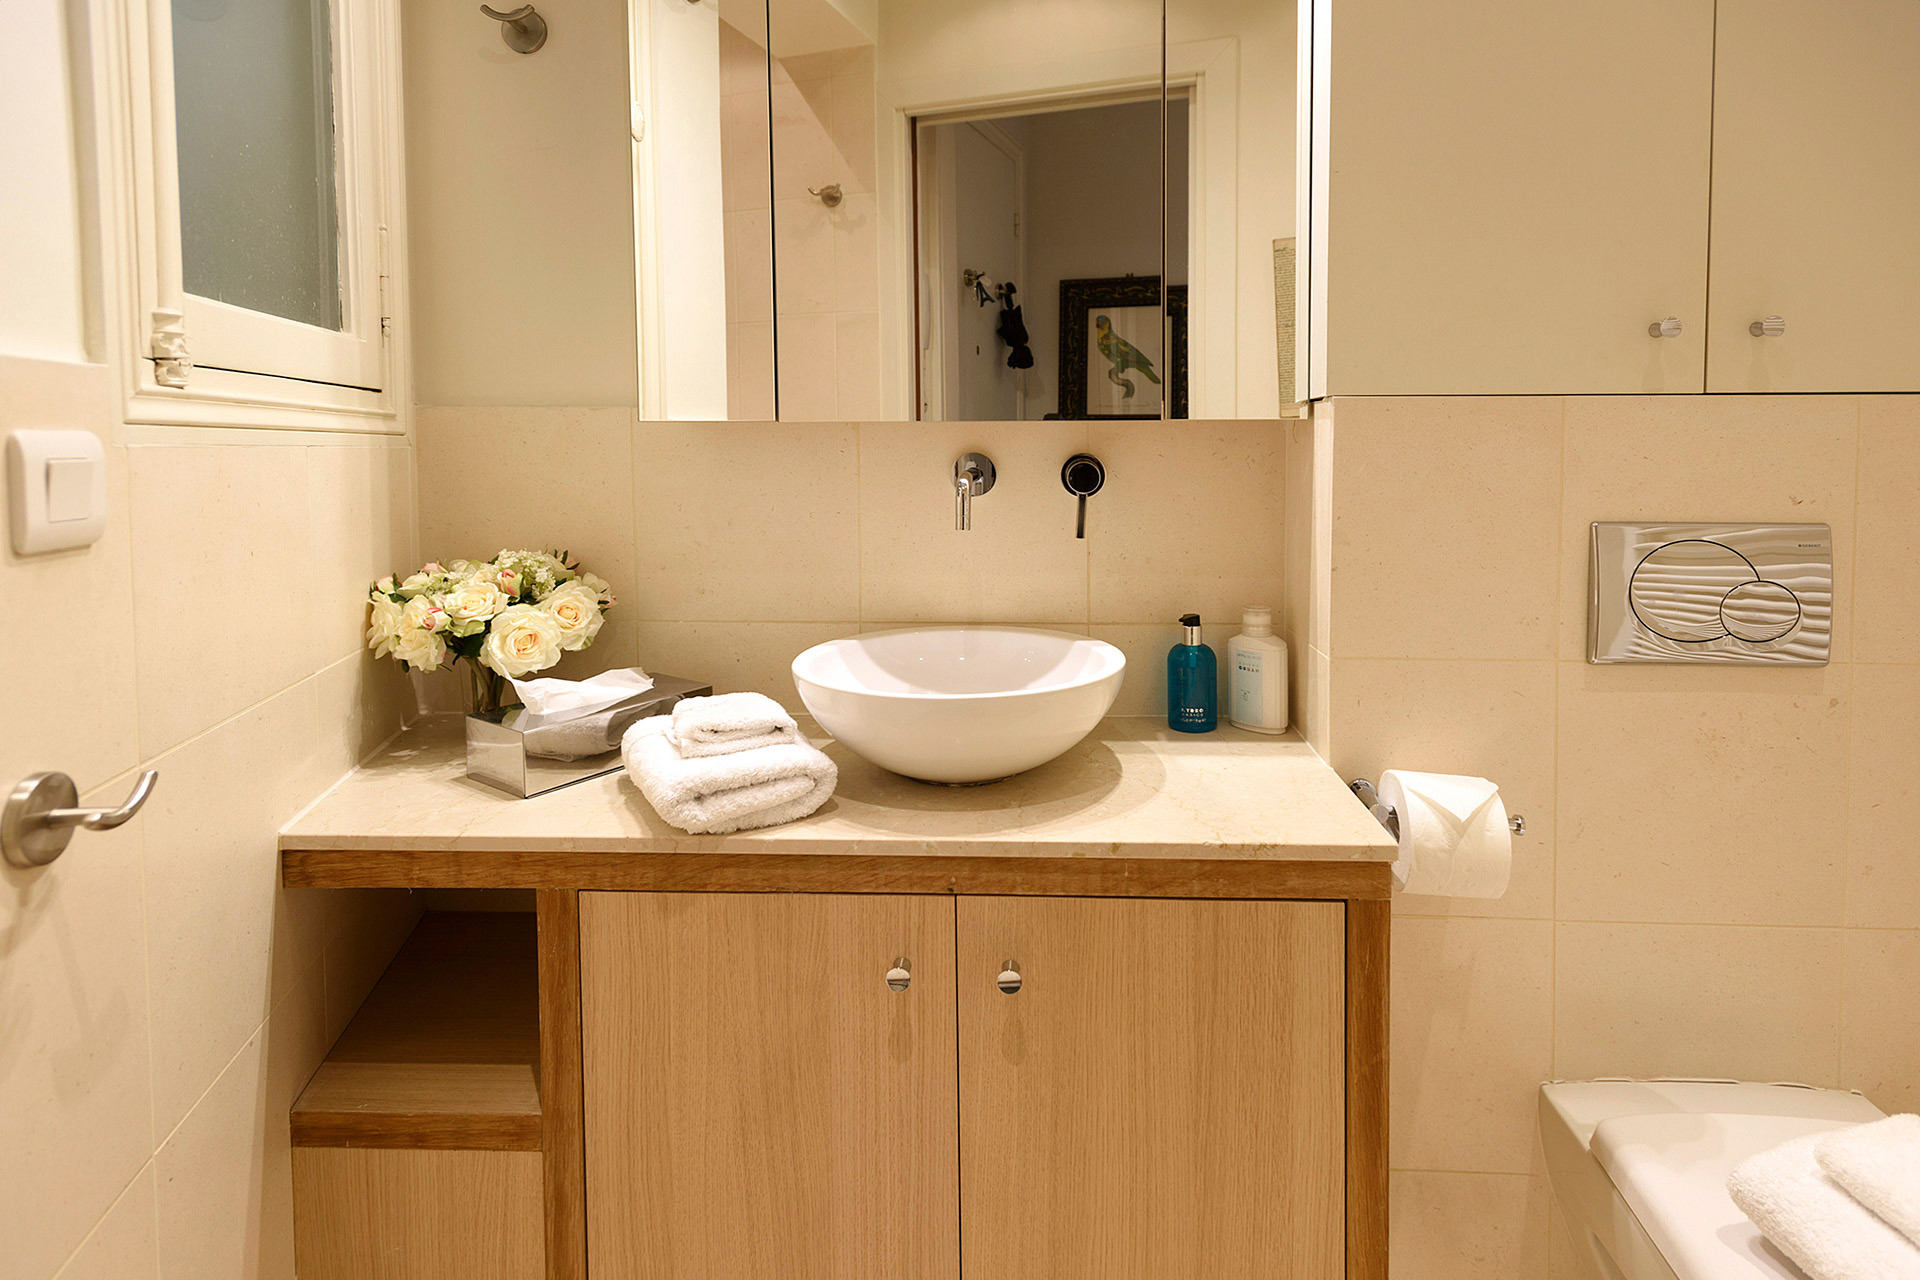 Bathroom with shower, sink and toilet in the Clairette vacation rental offered by Paris Perfect